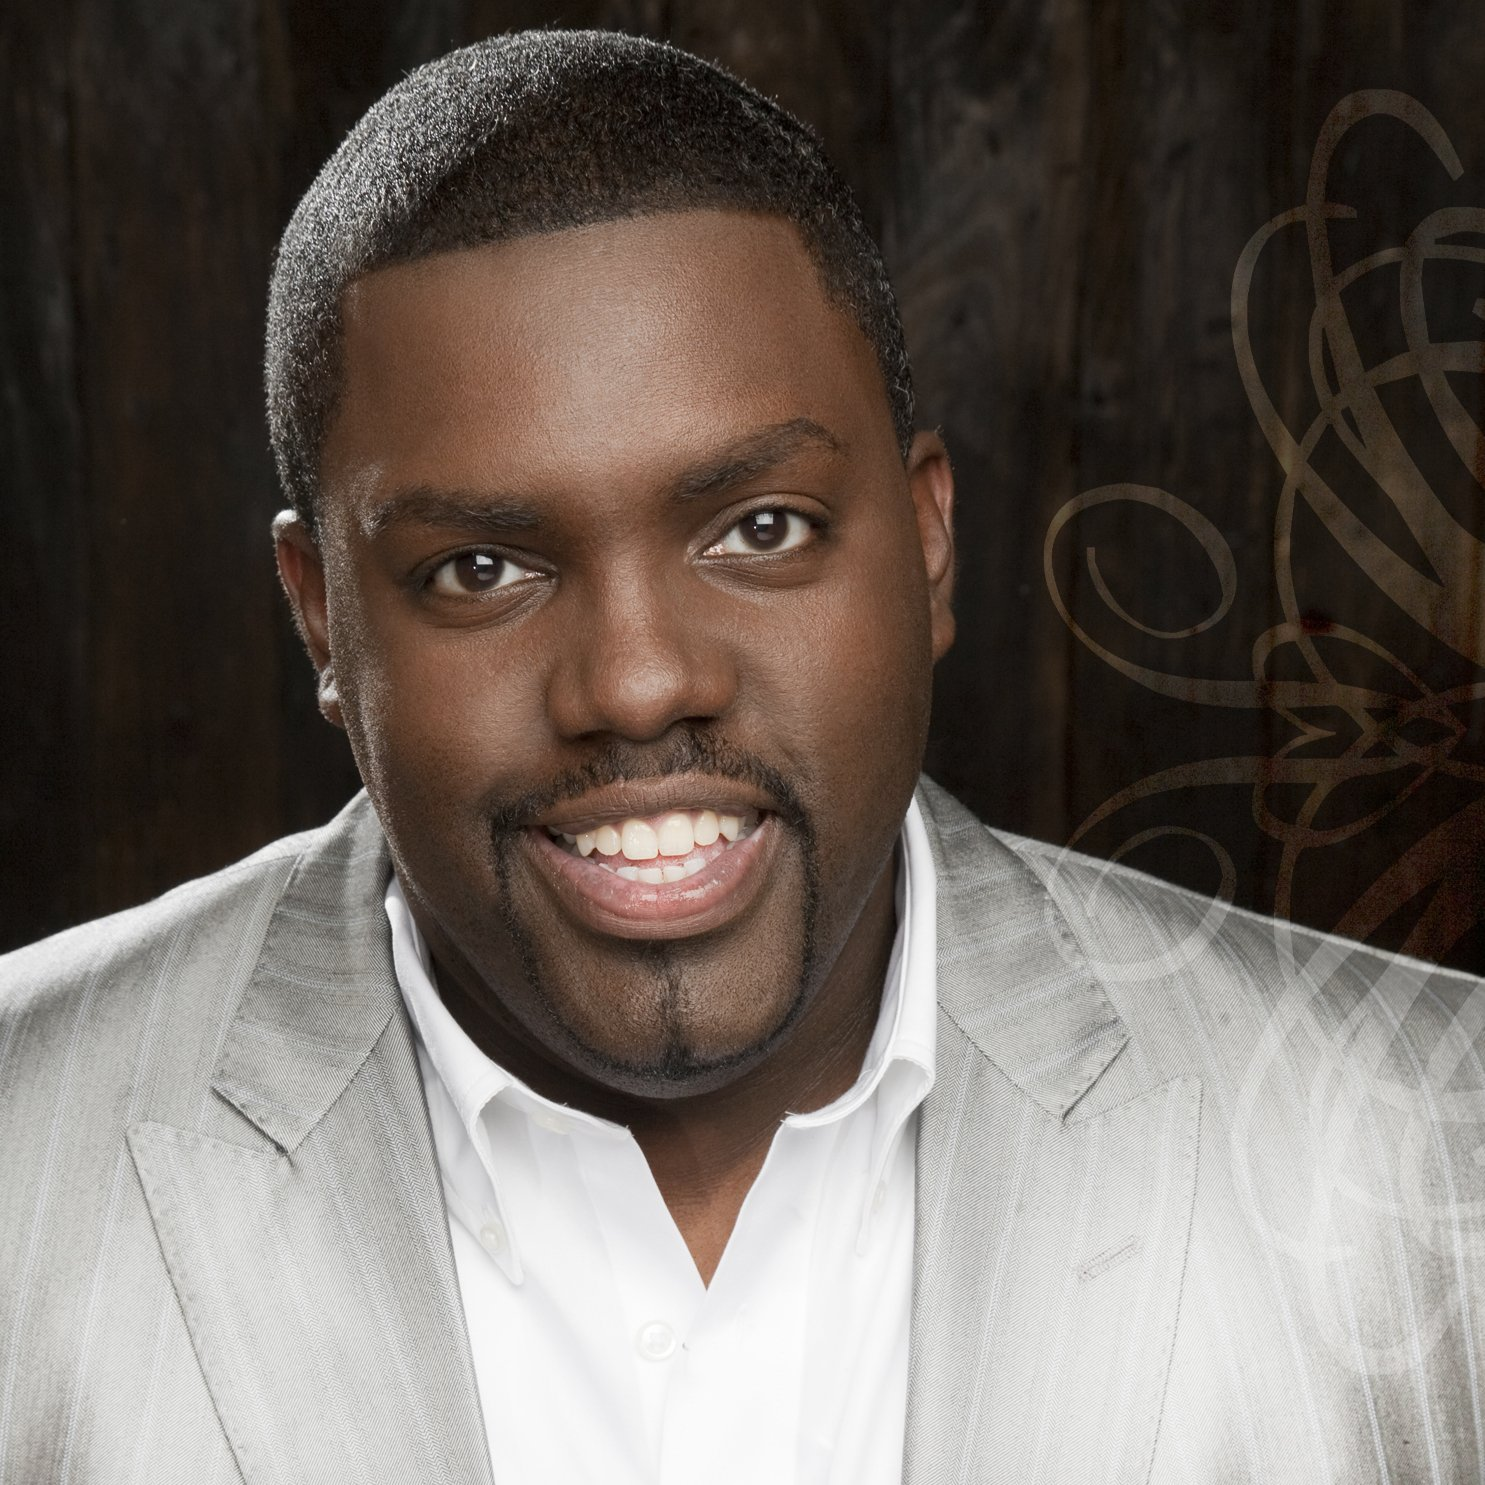 william mcdowell chord progression yallemedia.com